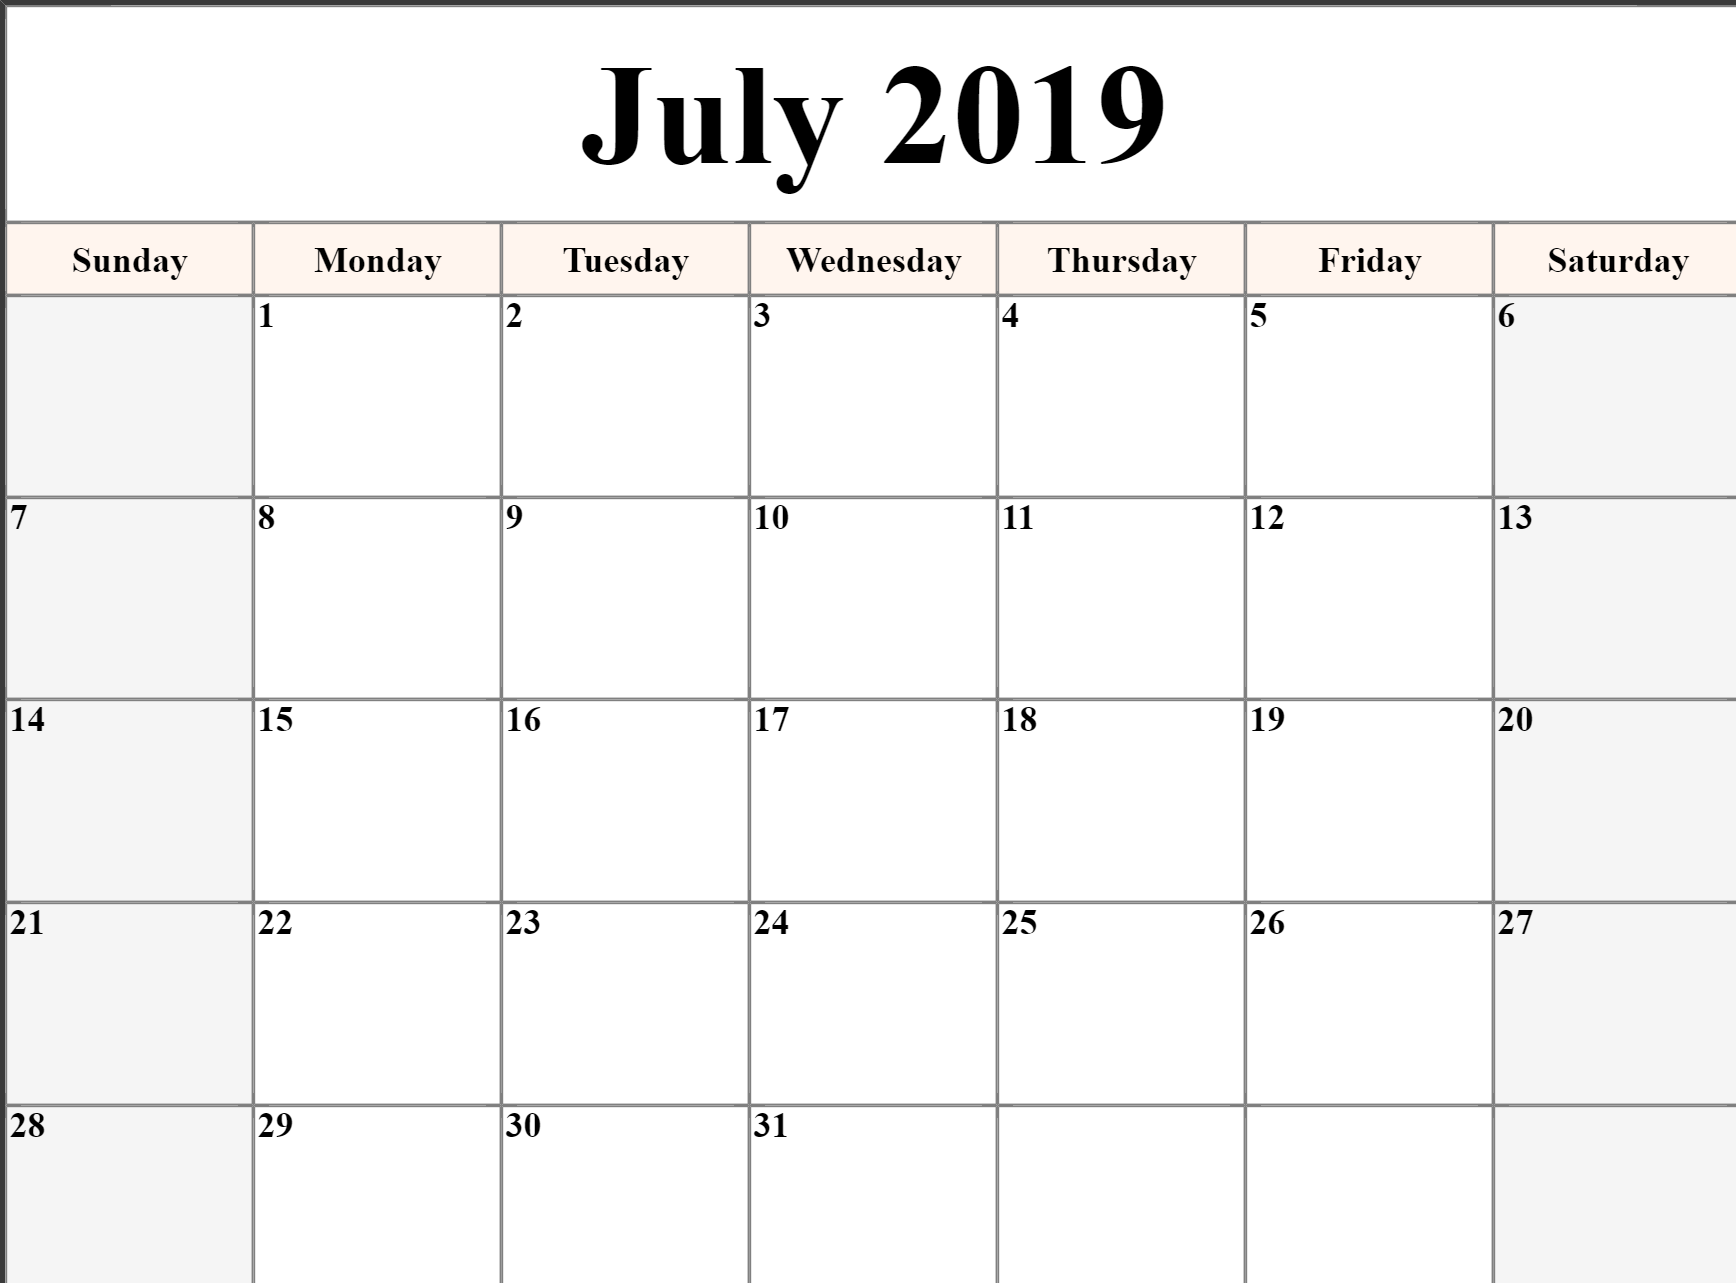 photo about Calendars Printable called 👉 July Calendar 2019 Printable, Editable, A4, Landscape